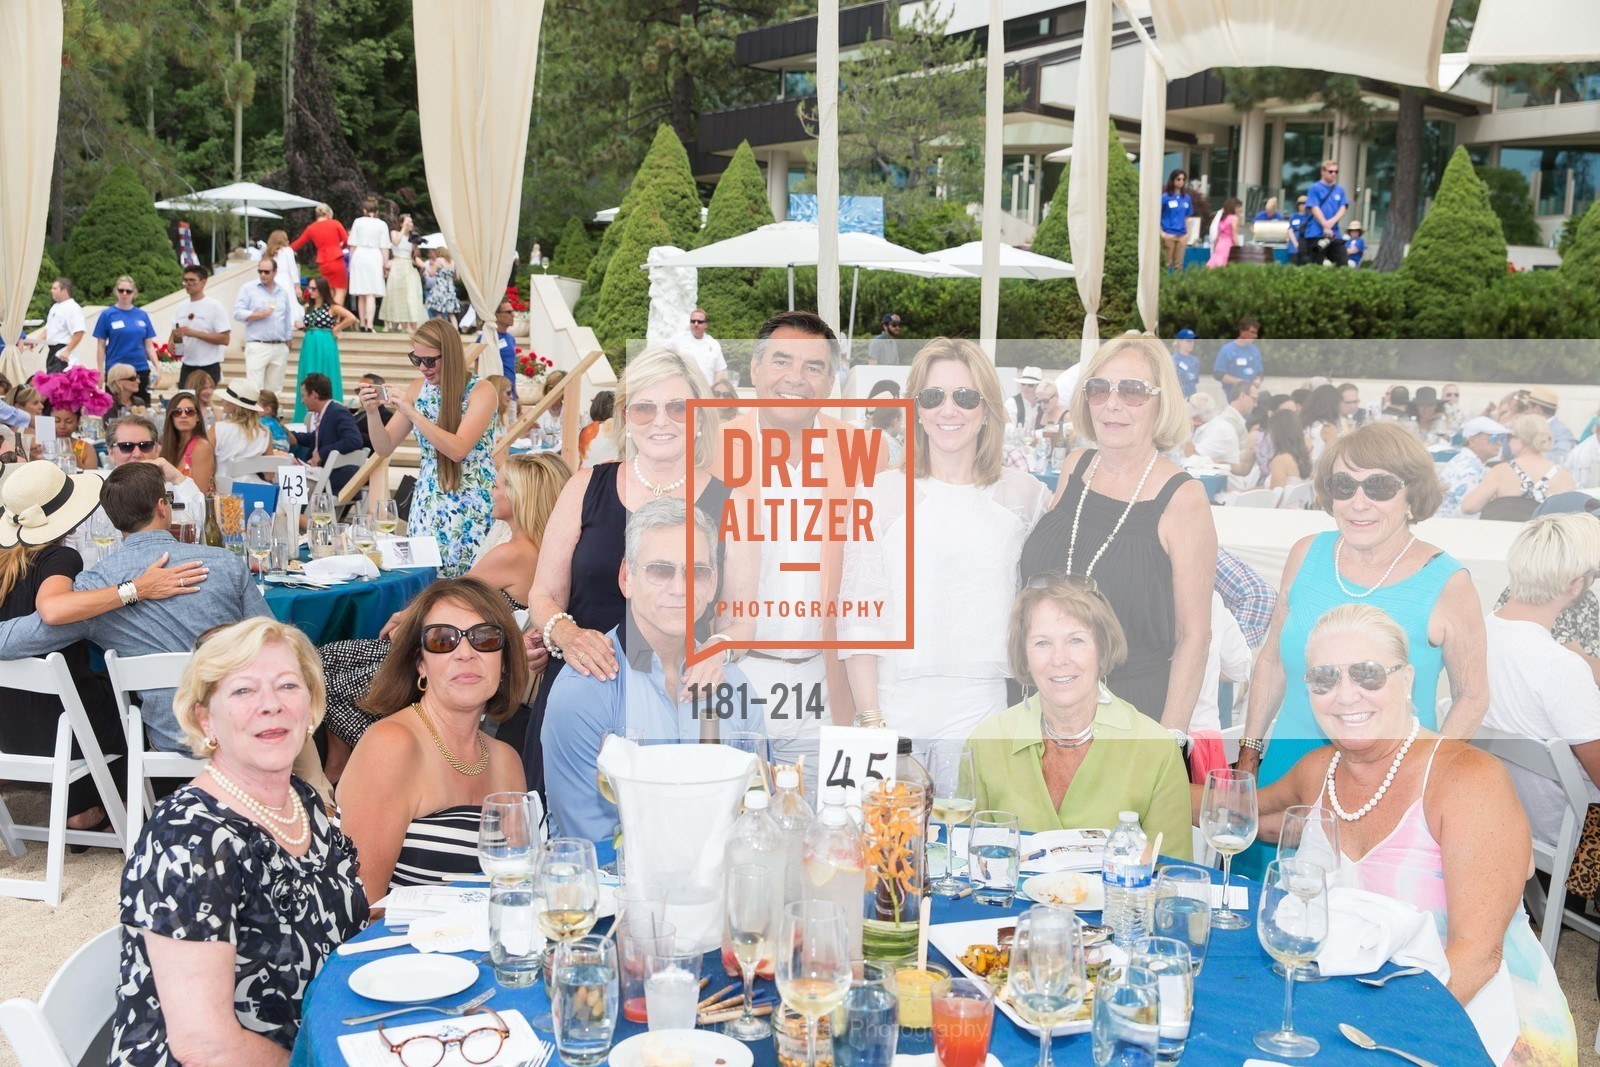 Joan Stern, Todd Lovett, Mark Sutter, Laura Lauman, Saks Fifth Avenue and The League to Save Lake Tahoe Present Fashion on the Lake, Private Residence, August 1st, 2015,Drew Altizer, Drew Altizer Photography, full-service agency, private events, San Francisco photographer, photographer california